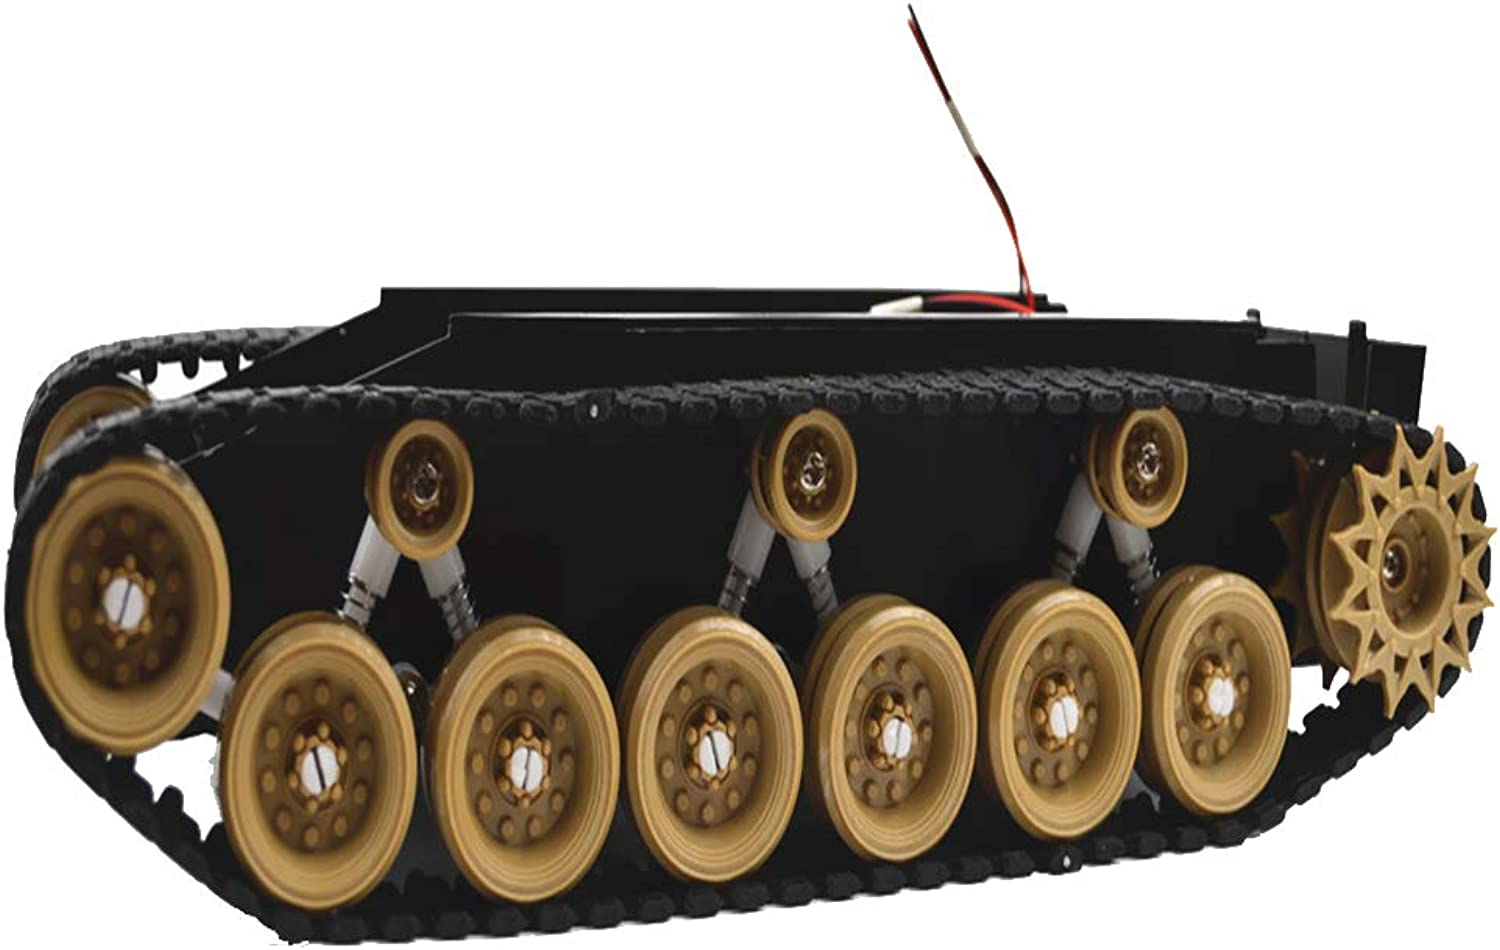 Baosity Smart Tank Chassis Platform with Shock Absorption System & Strong 260 Motors for Arduino Graduation